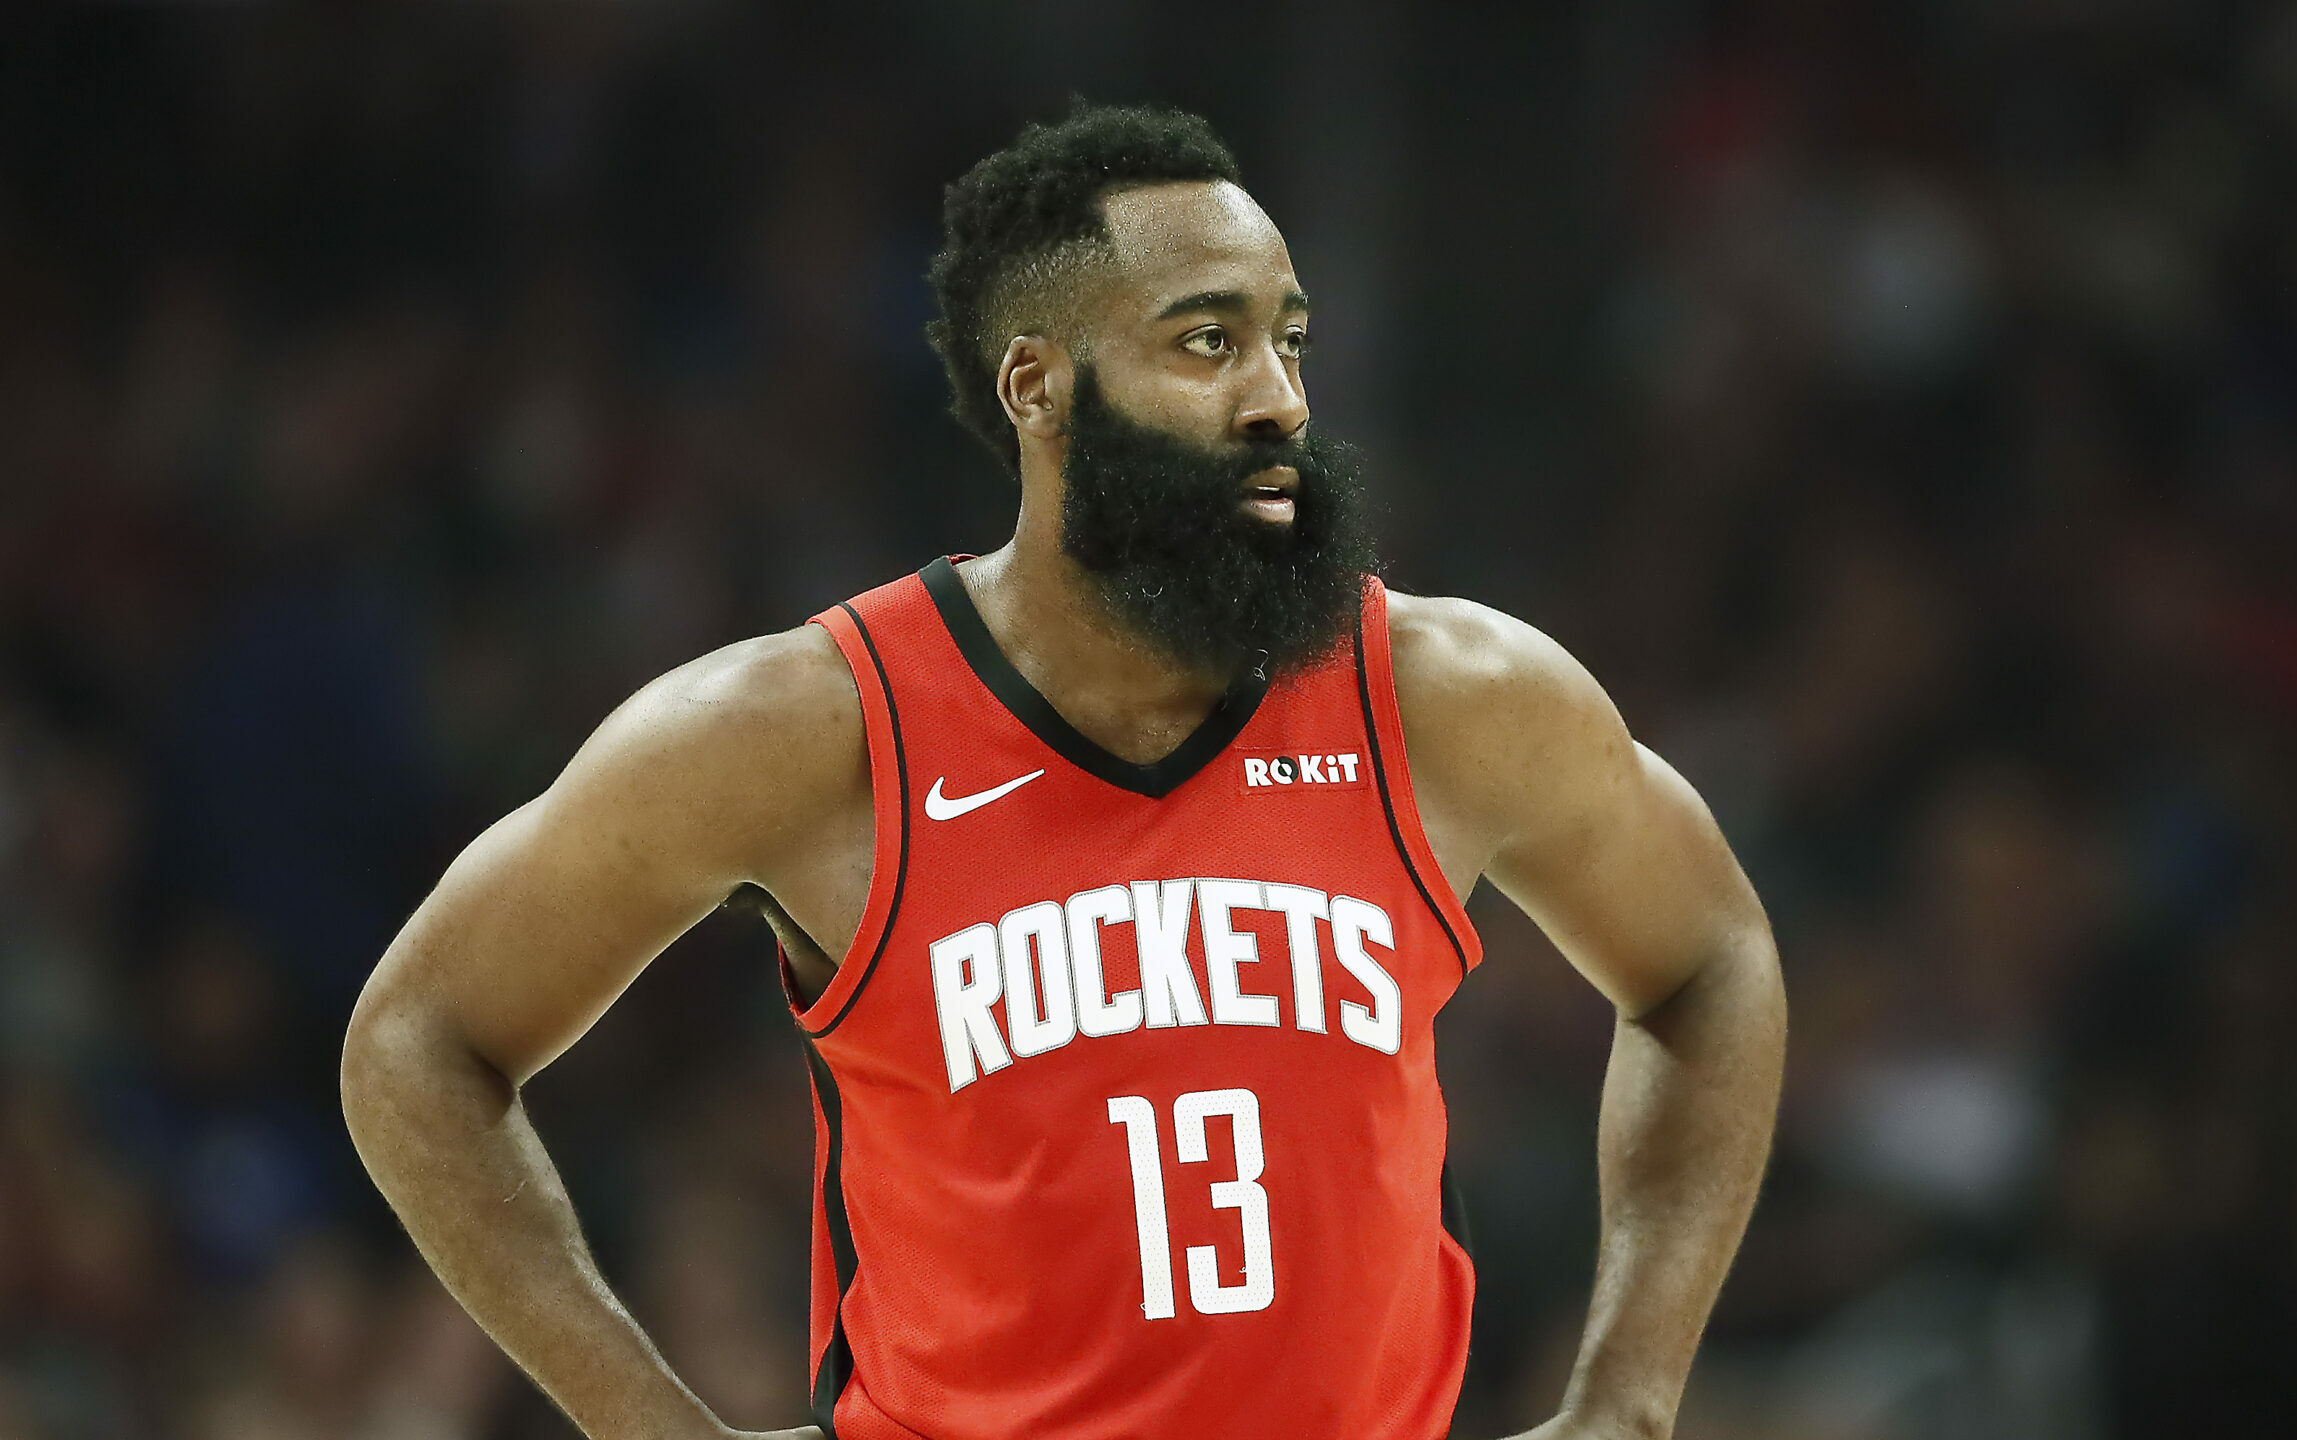 Rockets star James Harden arrives in Houston after delay